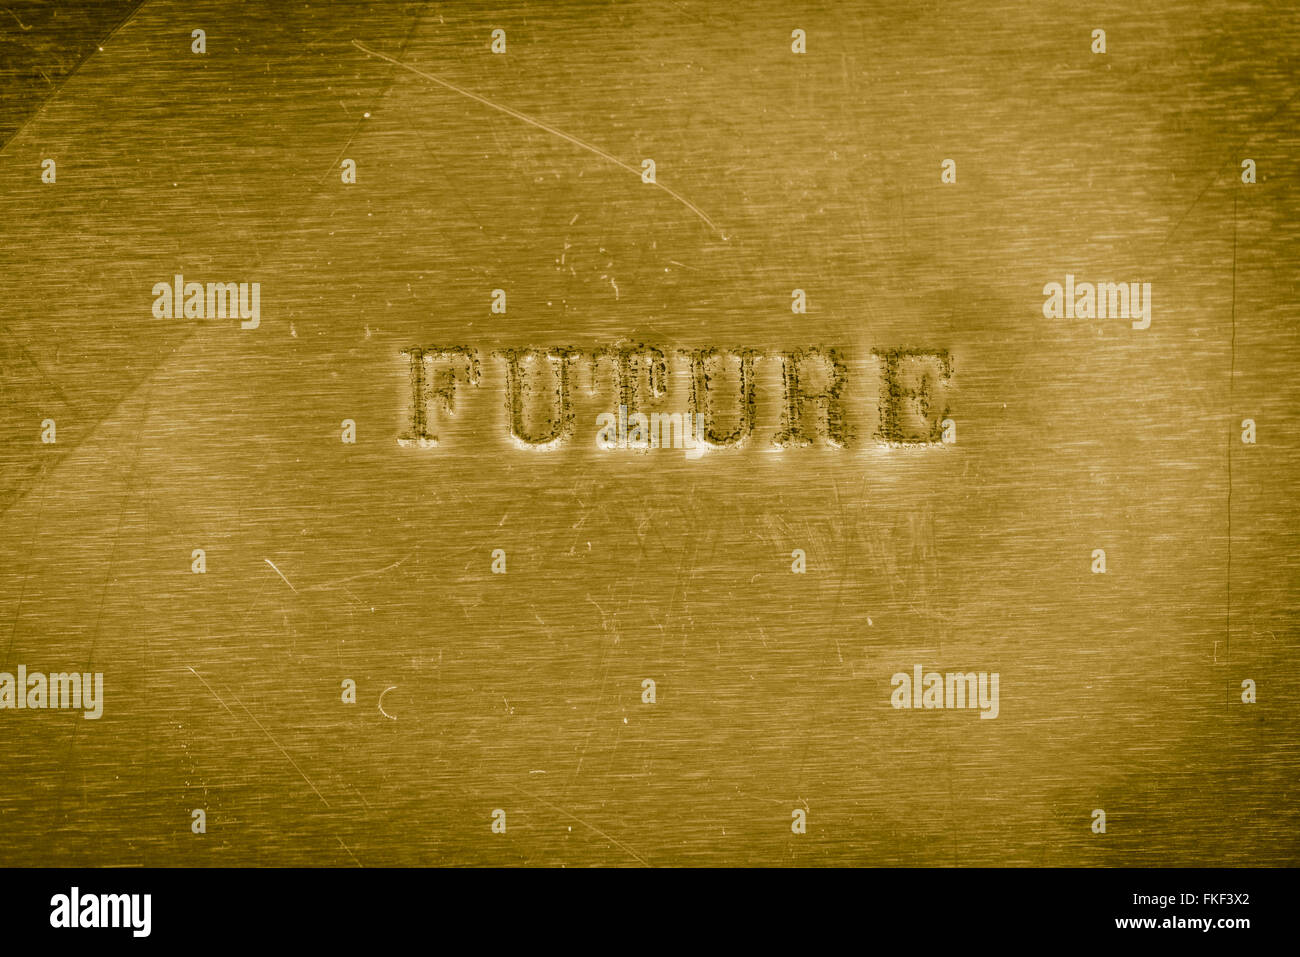 word future printed on  golden metallic background texture - Stock Image